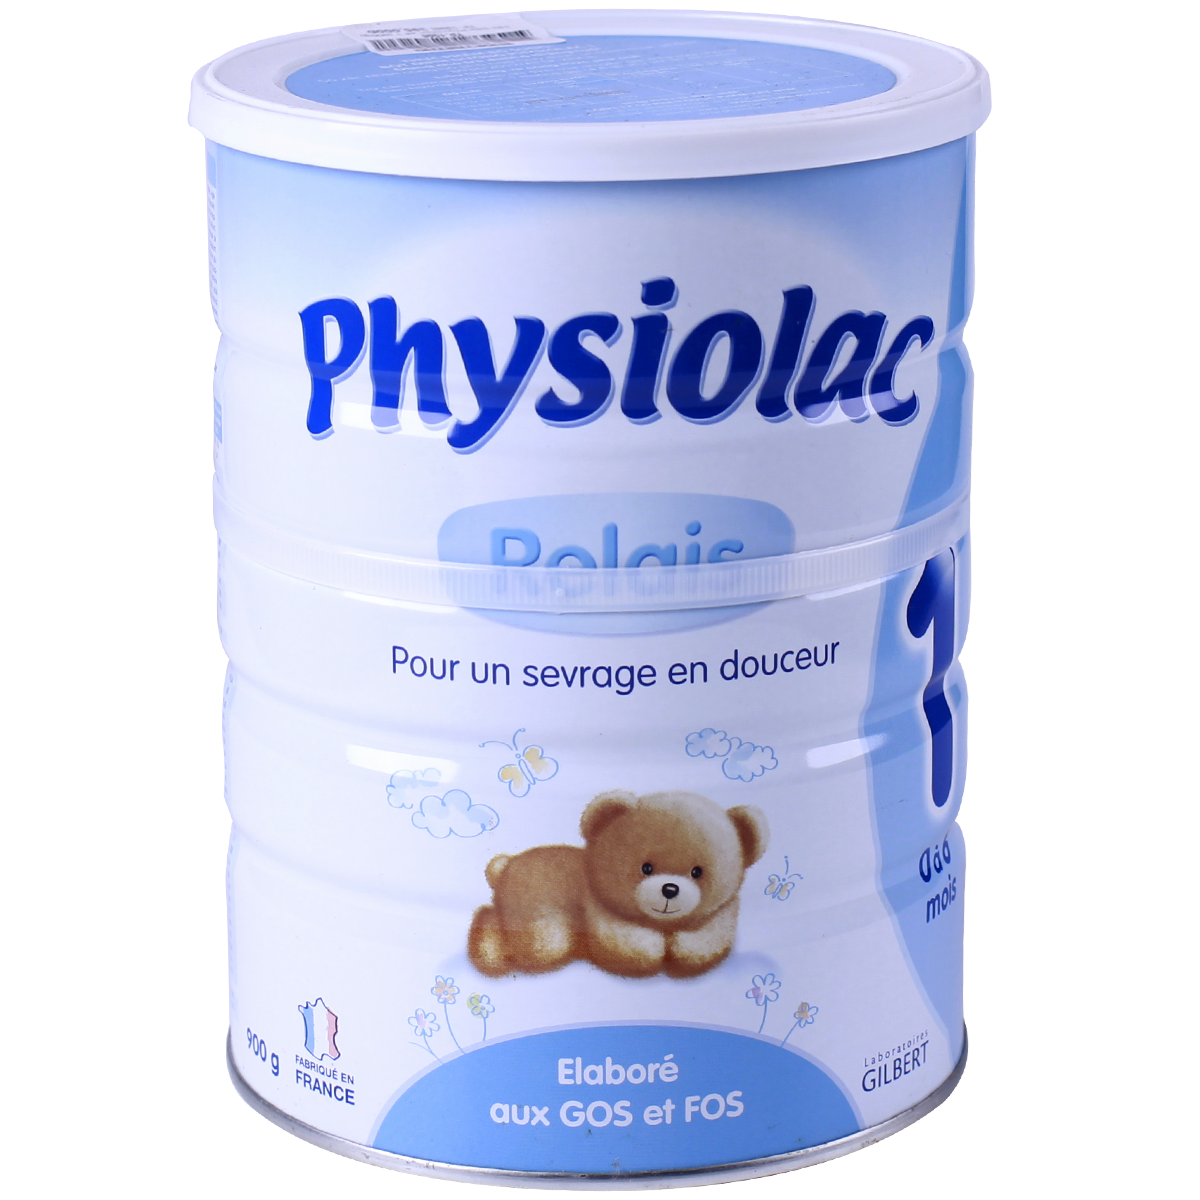 Sua Physiolac so 1 - 900g (0-6 thang)